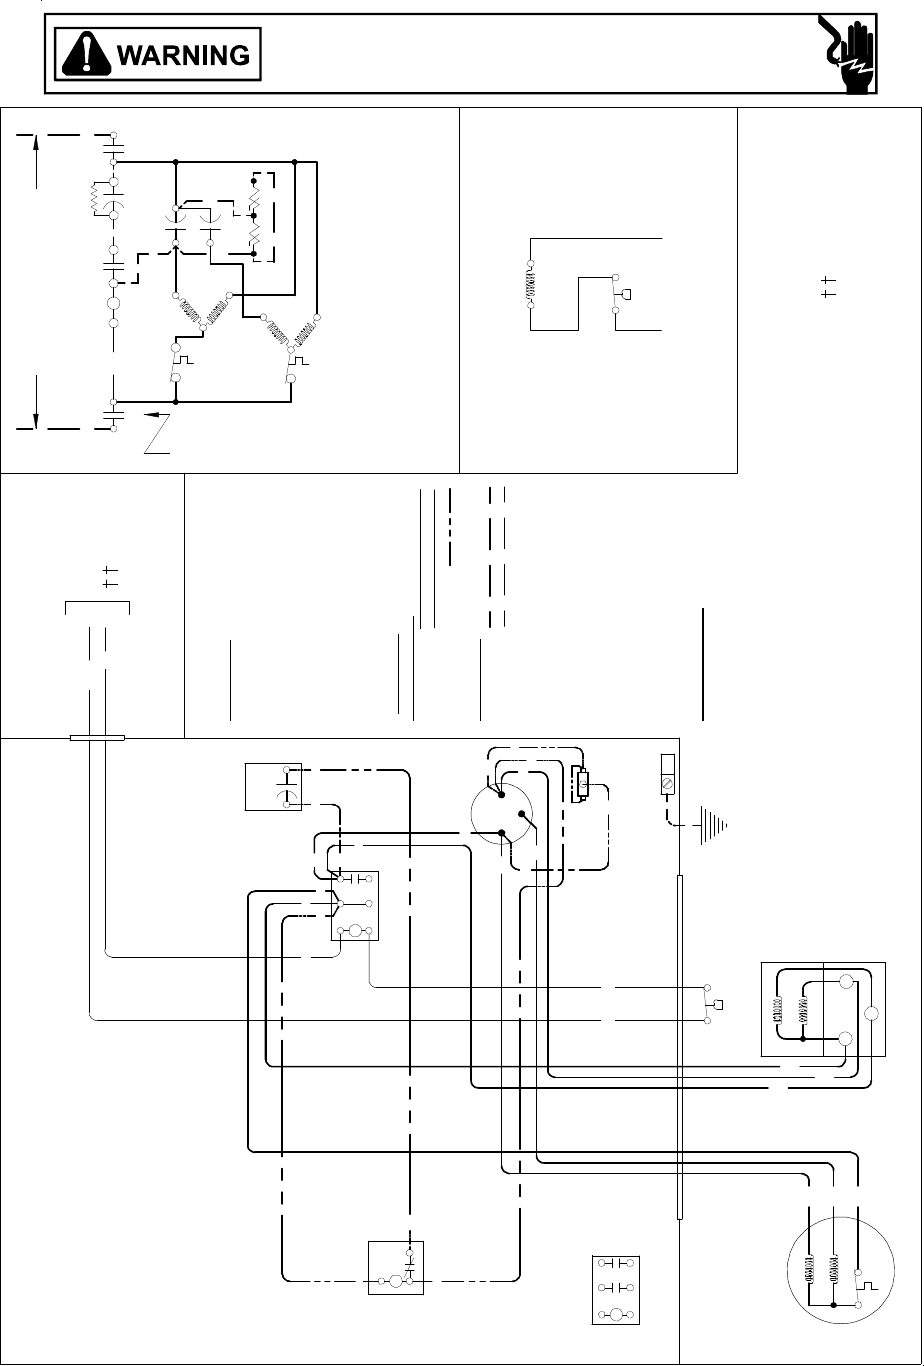 Goodman Manufacturing Wiring Diagrams Hkr20 Auto Electrical Air Handler Diagram For Ar61 1 Page 53 Of Mfg Conditioner Gsx User Guide